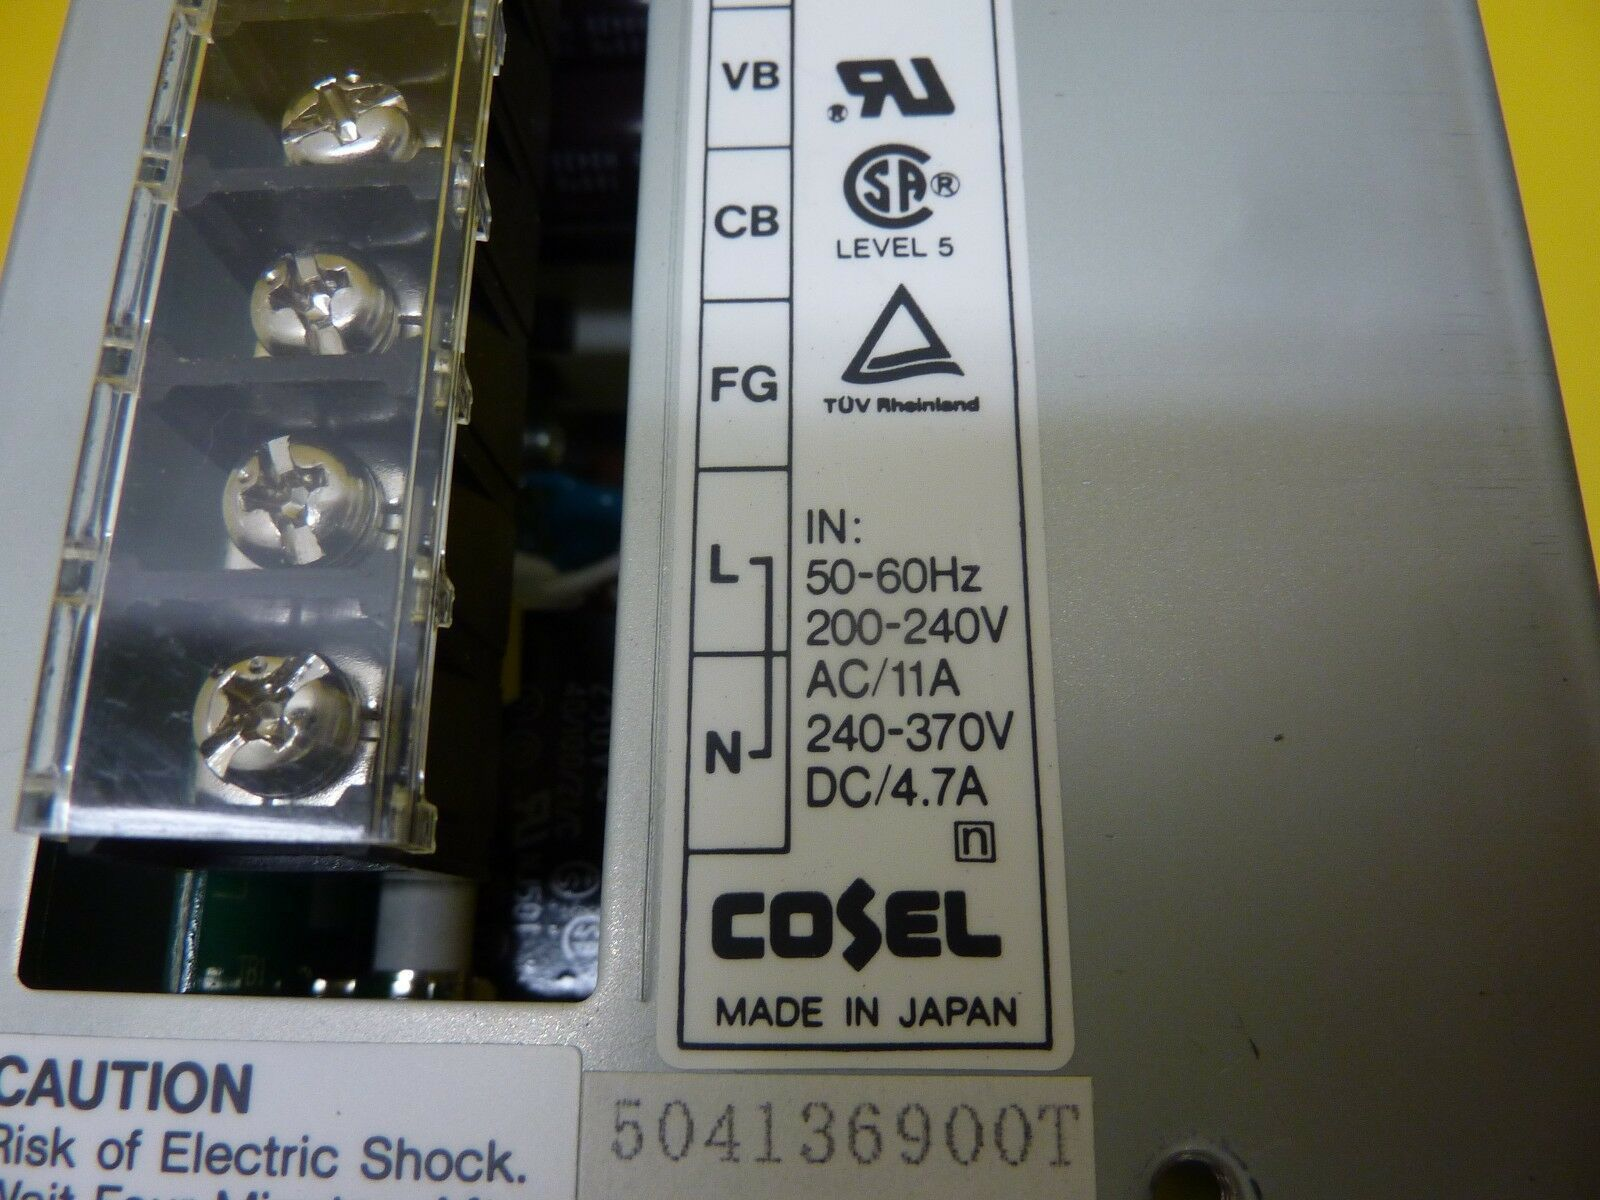 Cosel 504136900T AC/DC Adjustable Voltage Power Supply AD960-30 Used Working